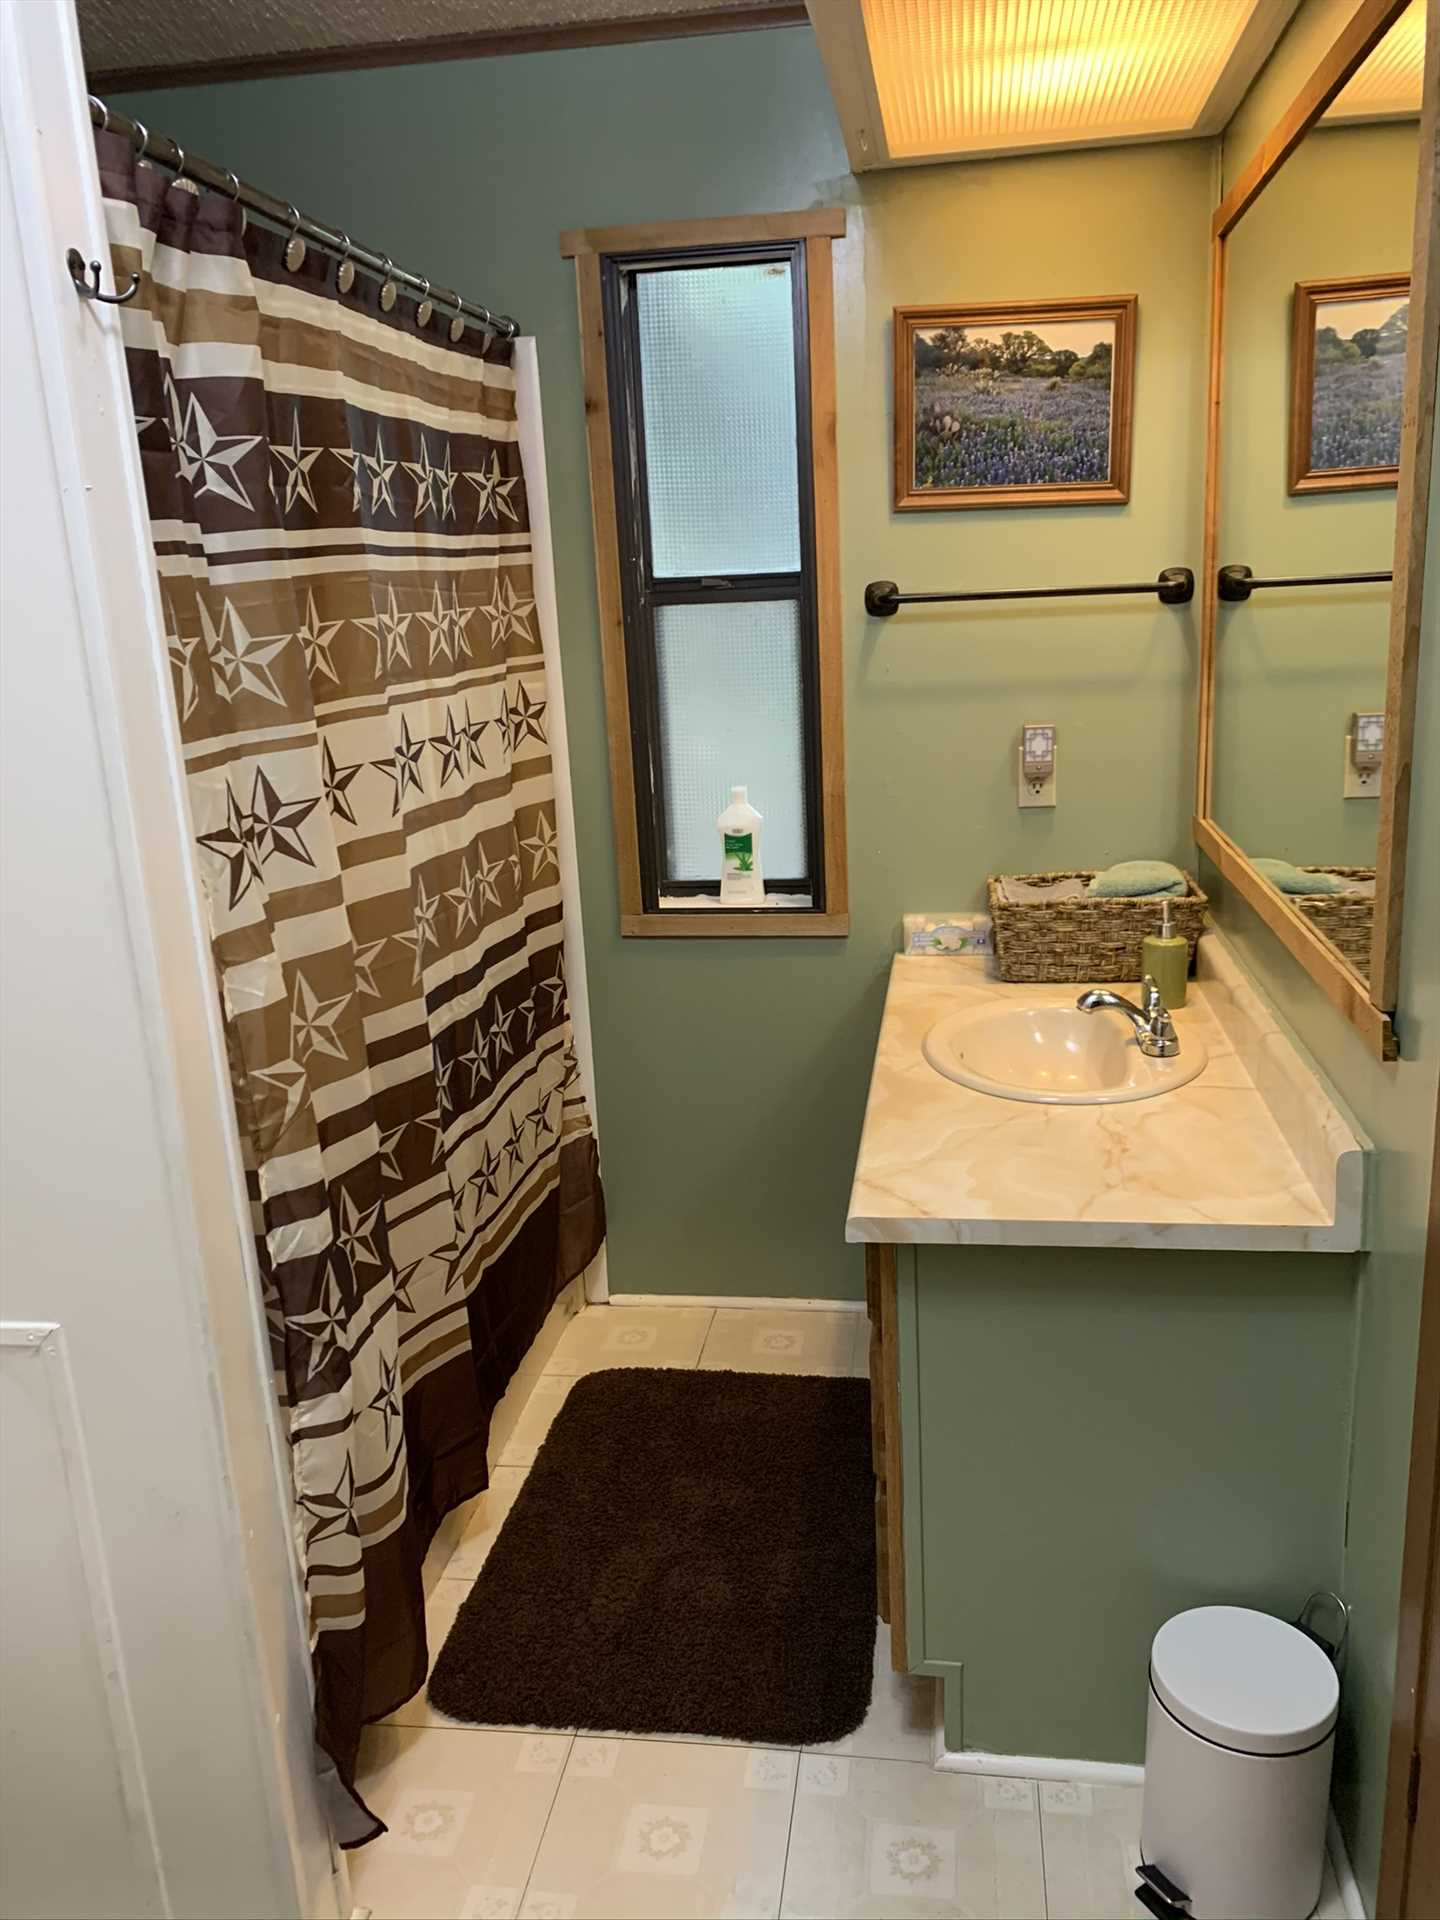 A shower and tub combo, along with plenty of complimentary linens, can be found in the second bath.